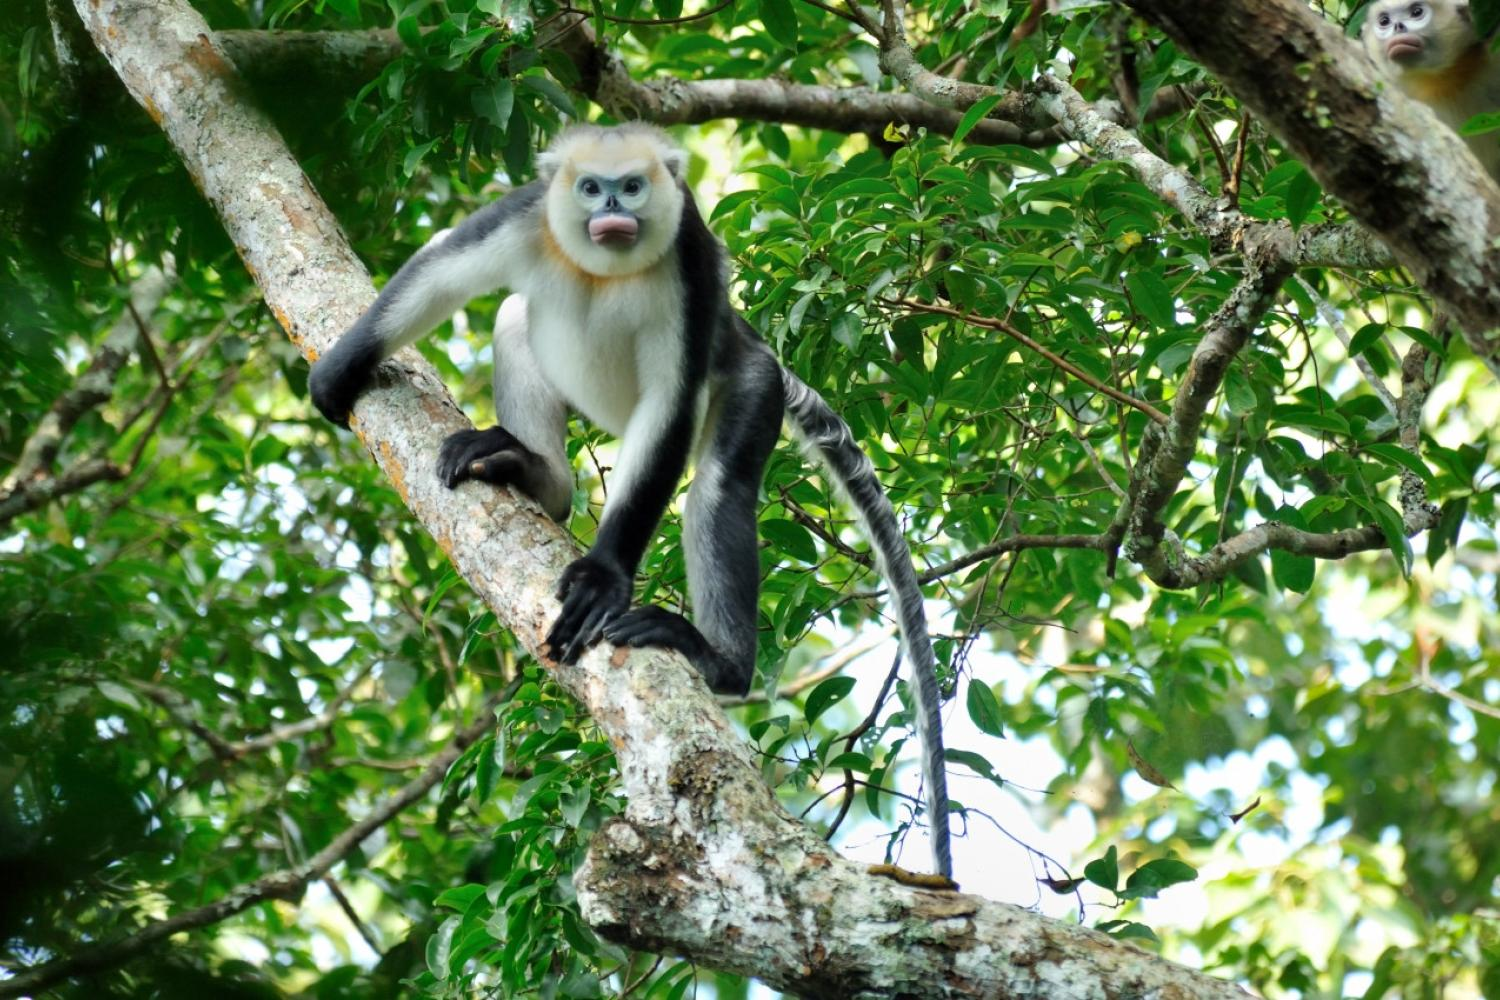 Monkey of some kind